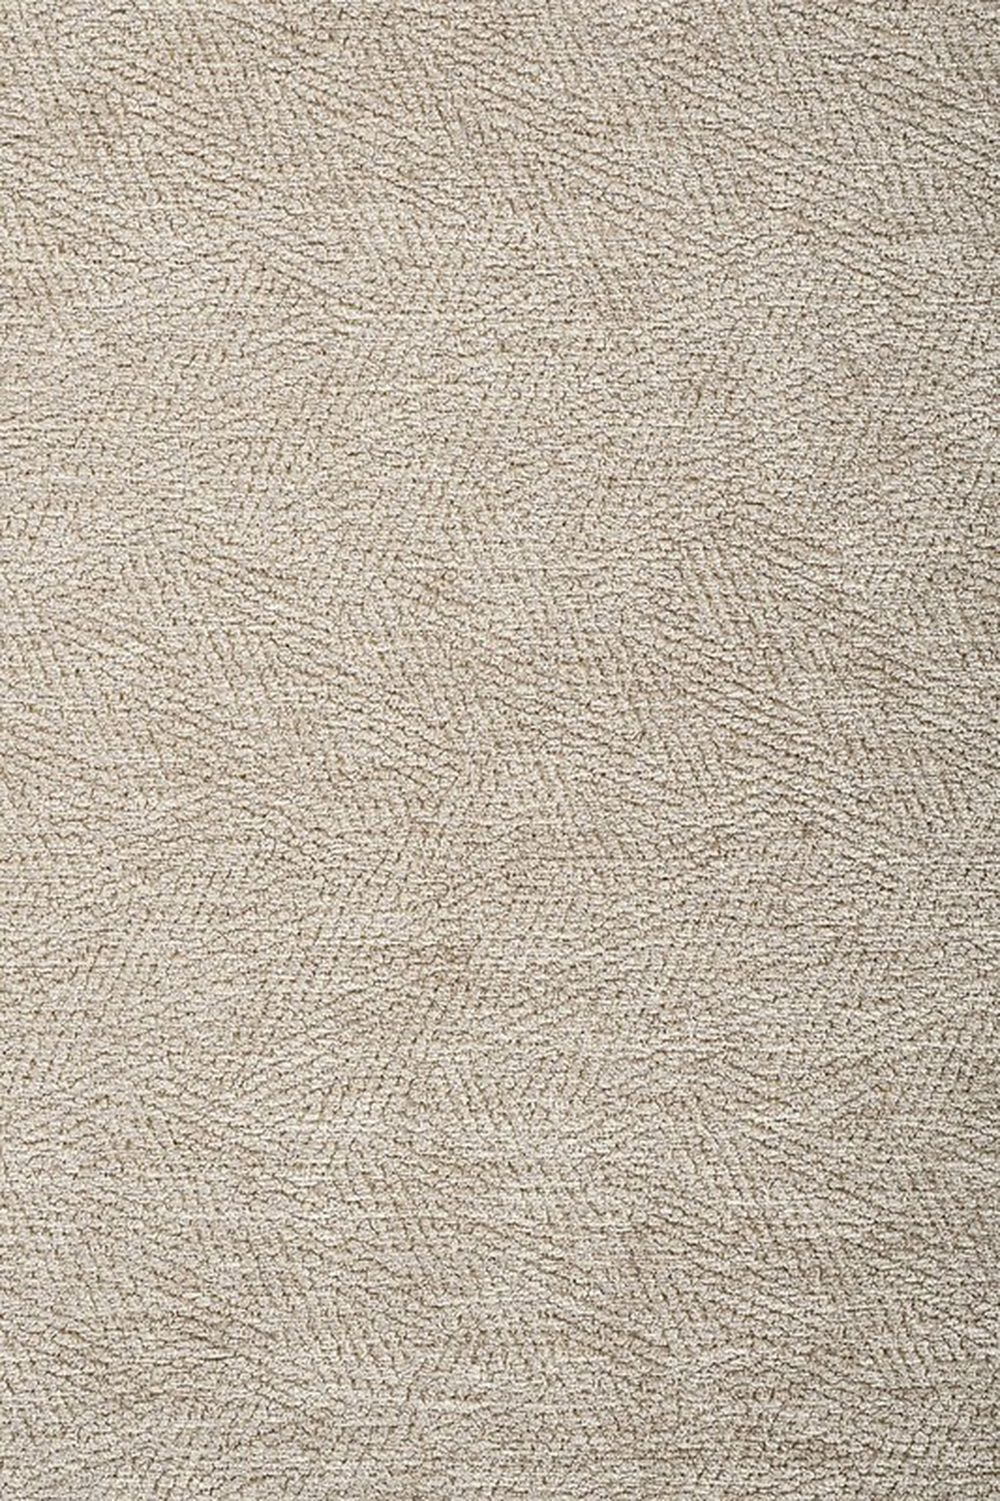 Photo of the fabric Contexture Linen swatch by James Dunlop. Use for Upholstery Heavy Duty, Accessory. Style of Geometric, Plain, Texture